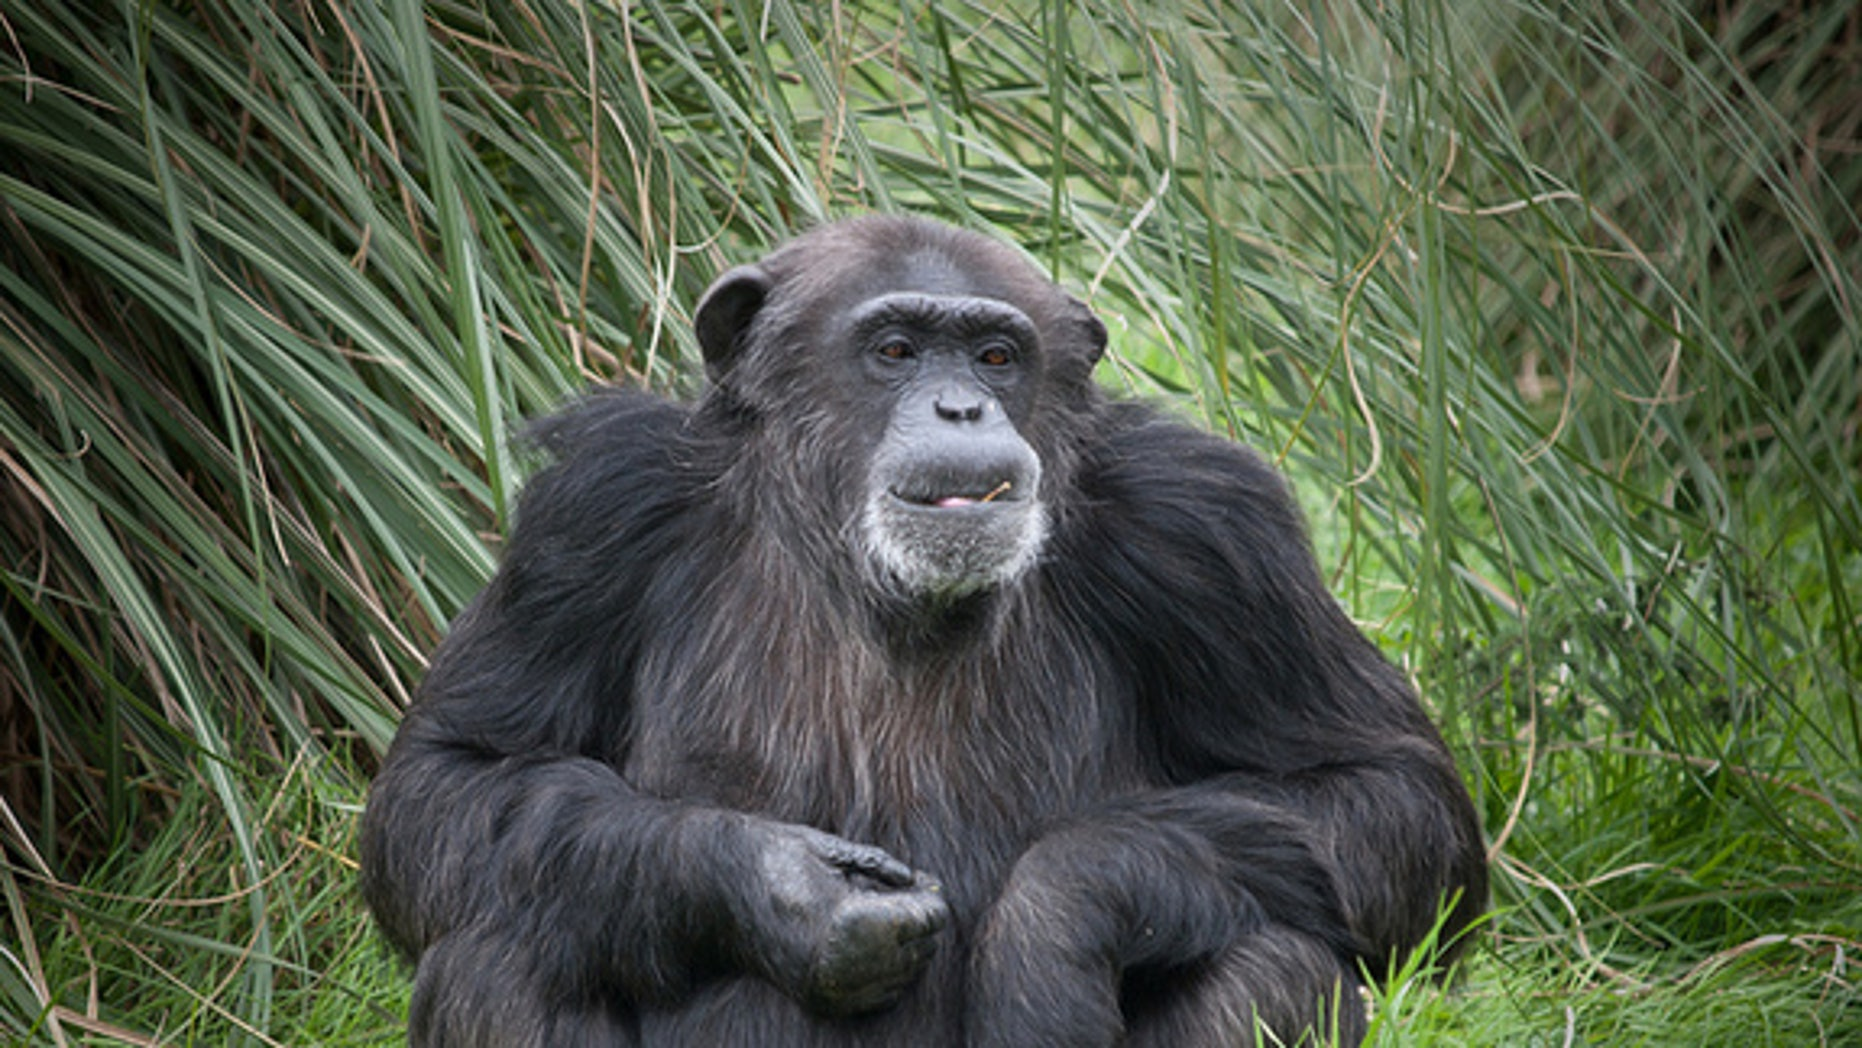 Chimpanzees and orangutans go through a midlife dip in happiness, new research suggests.